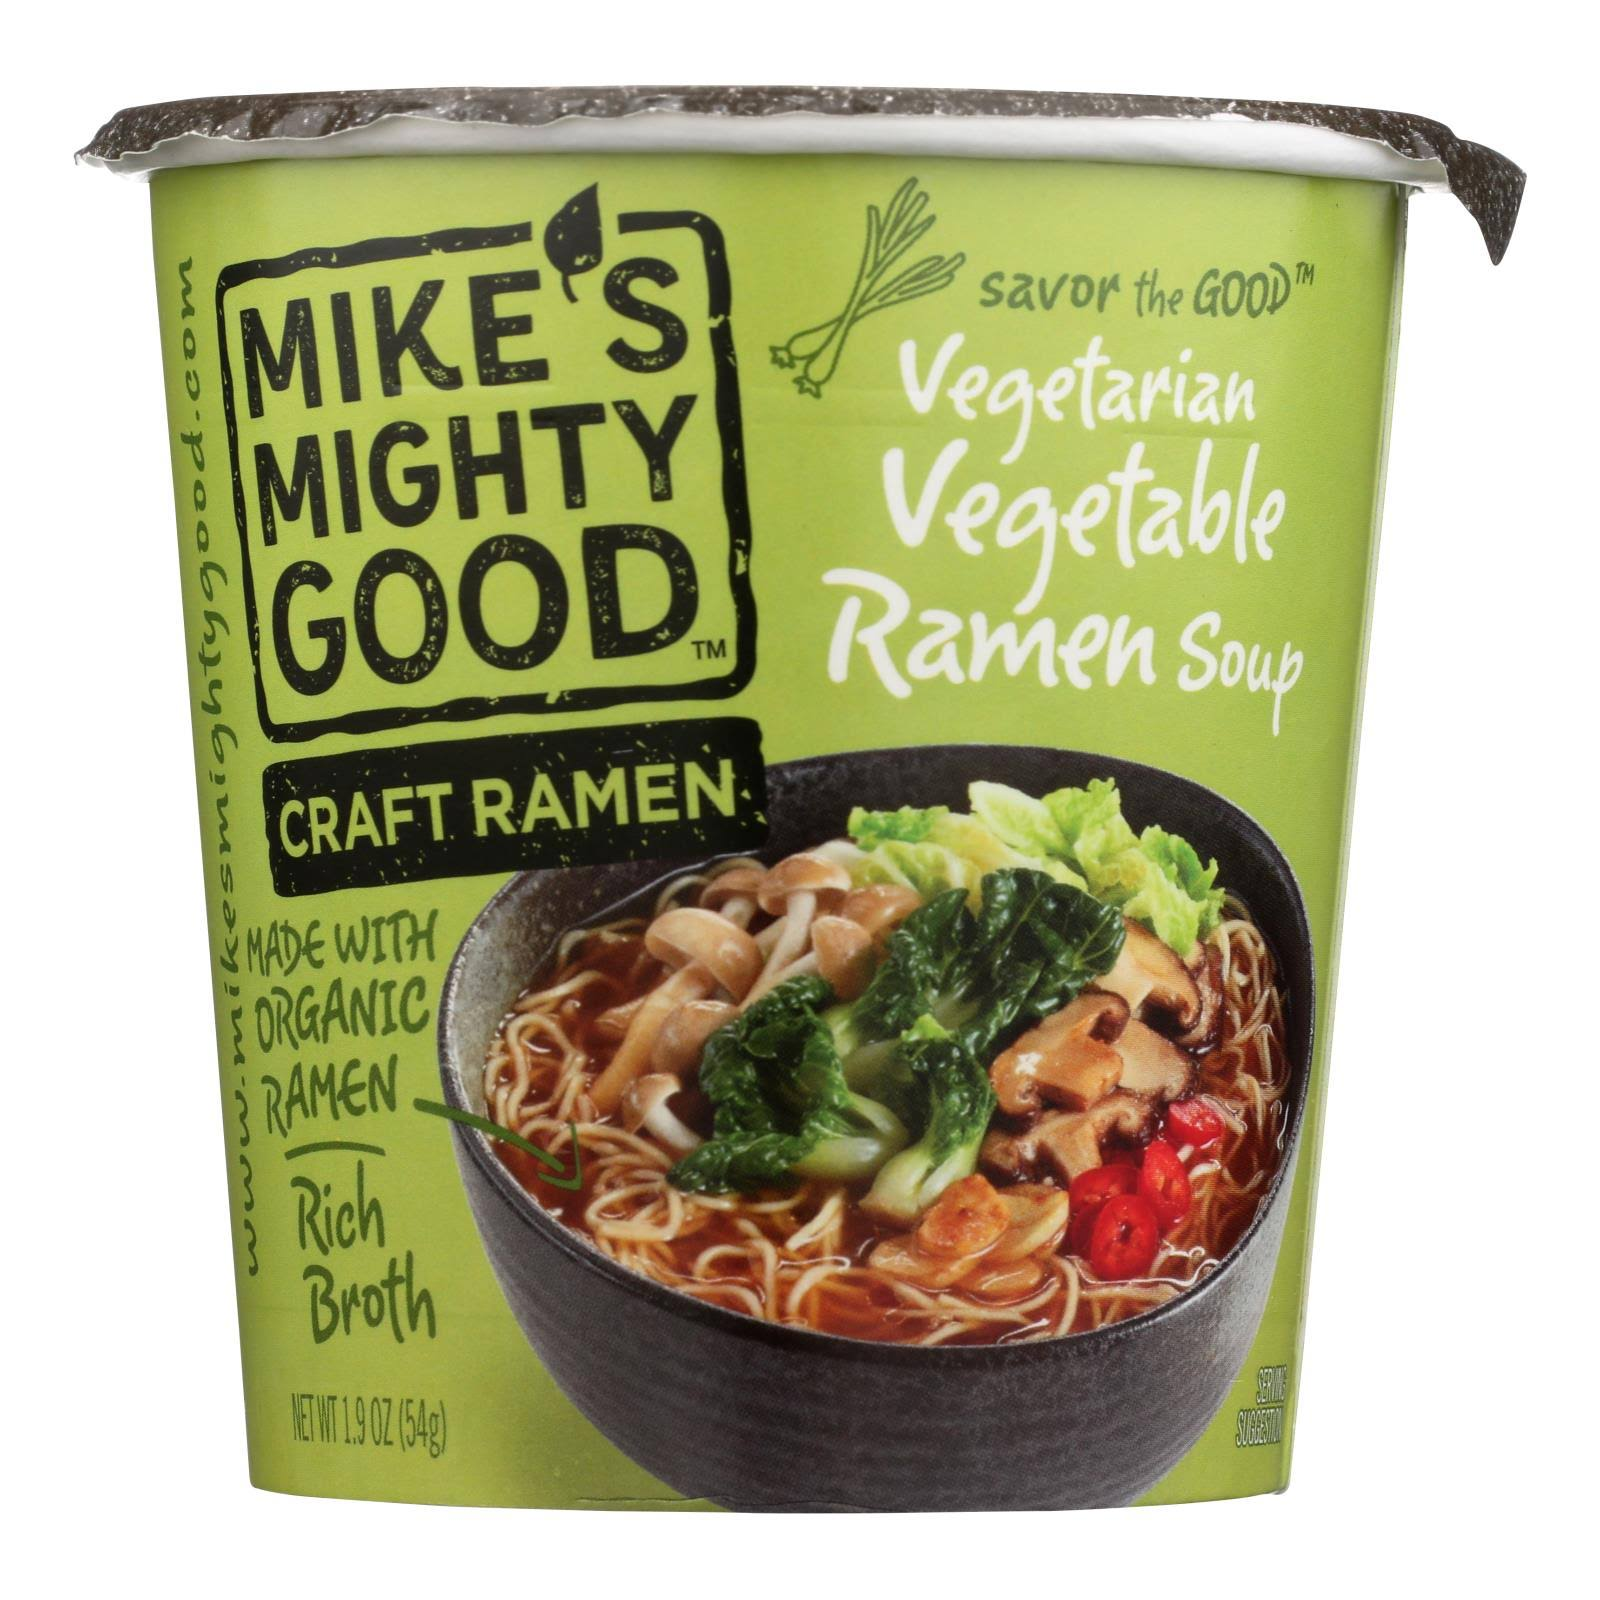 Mikes Mighty Good Craft Ramen Ramen Soup, Vegetarian Vegetable - 1.9 oz